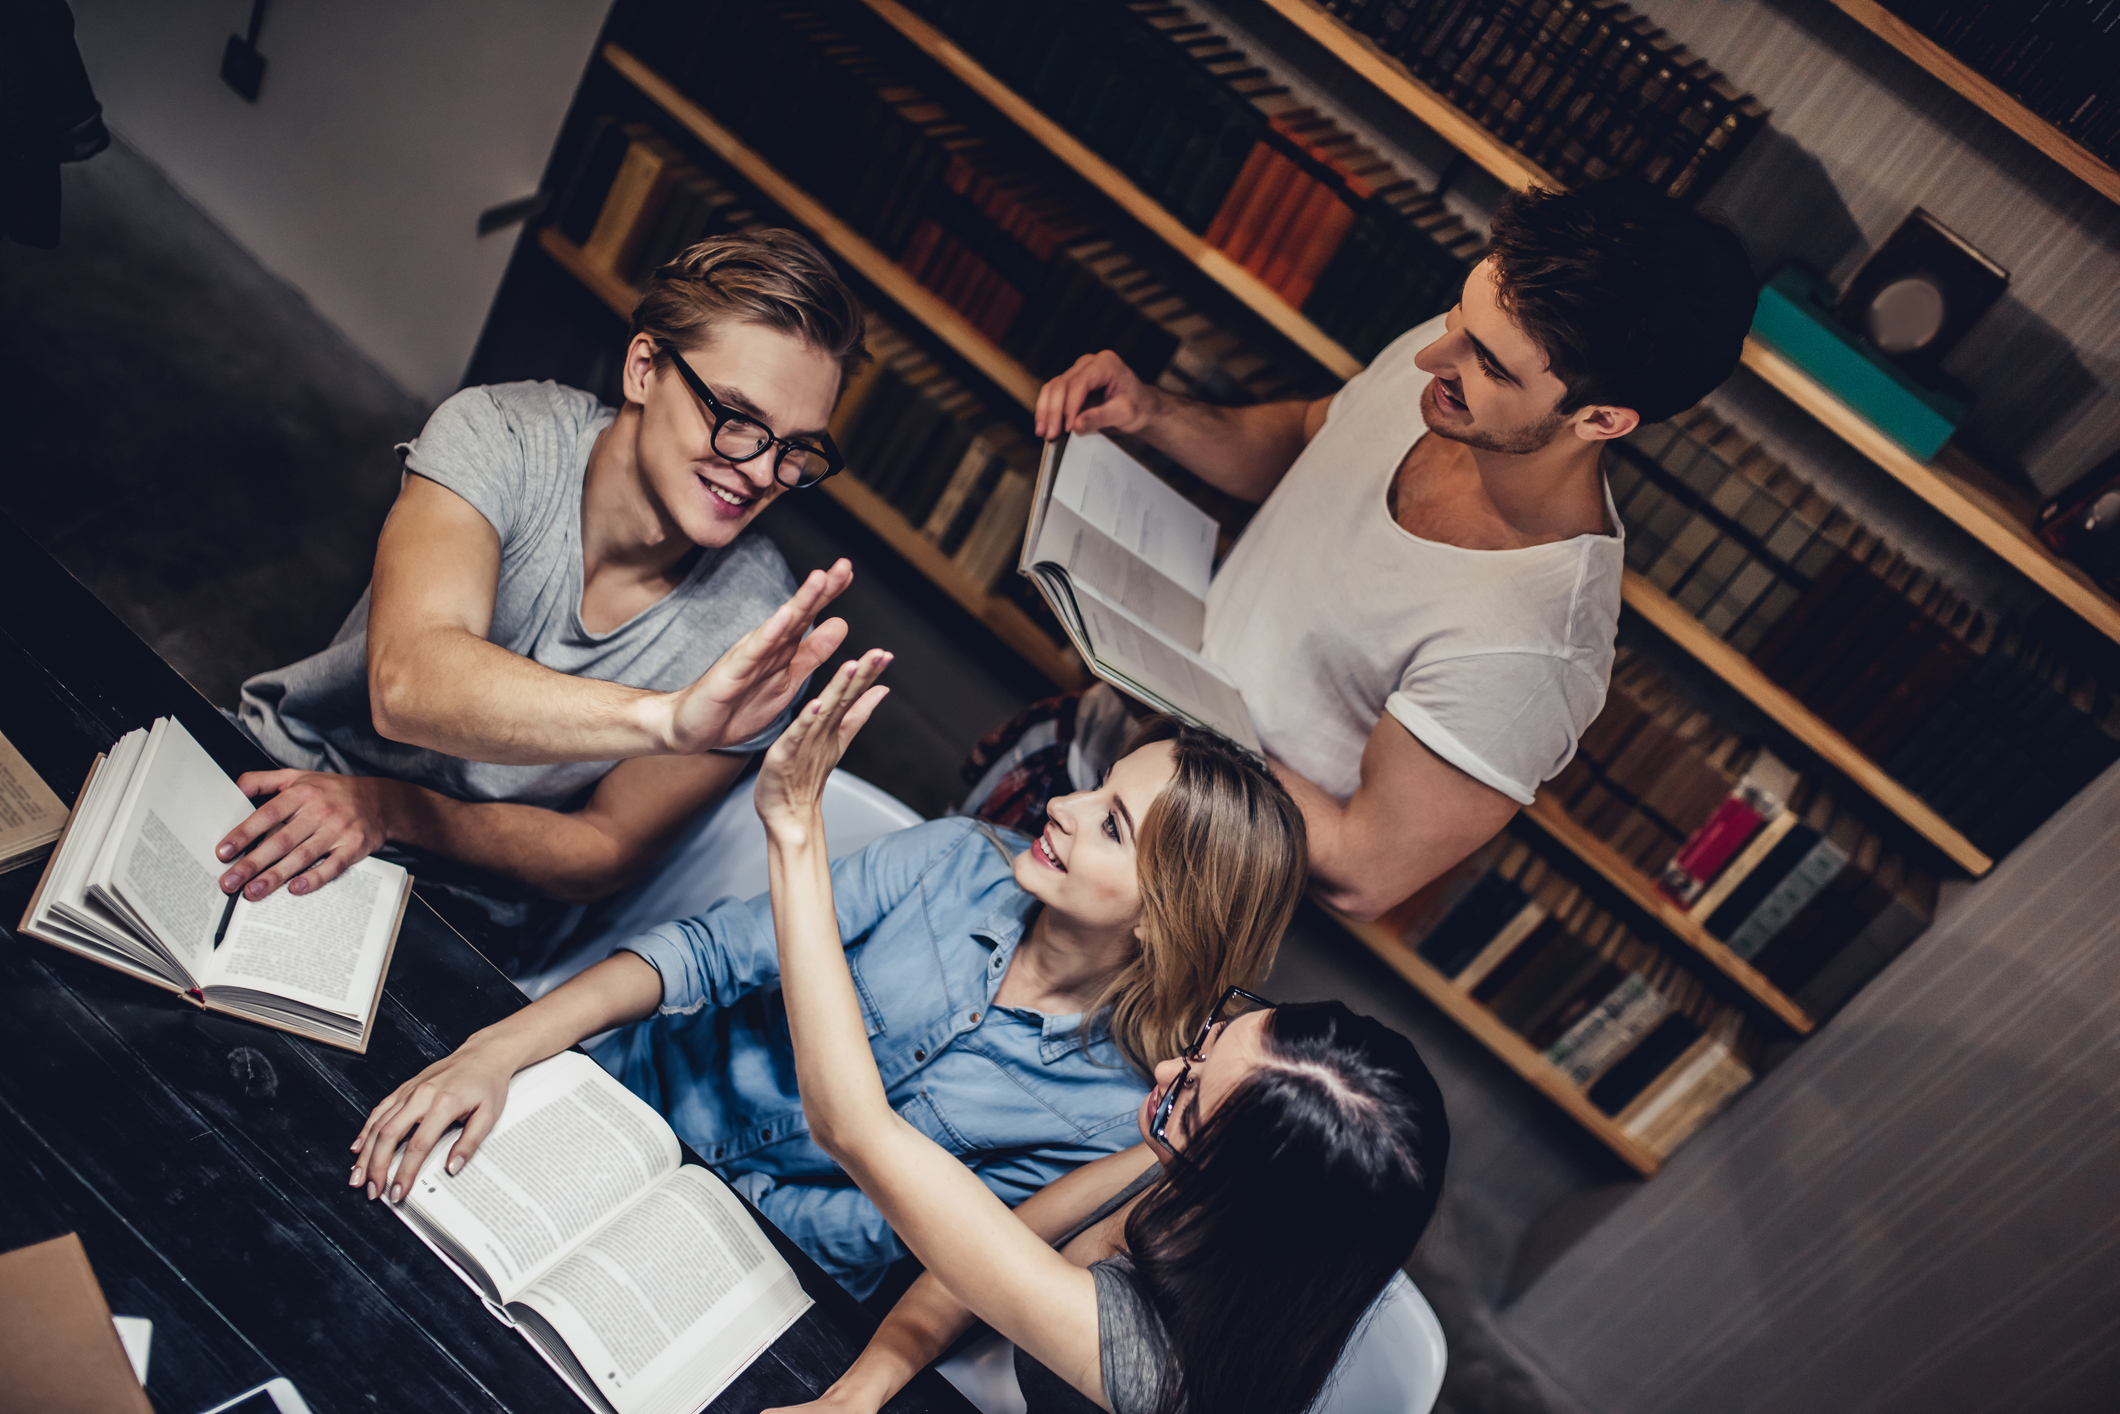 Many students are mistaken about how much their peers typically study (and this seems to affect their exam performance in some surprising ways)